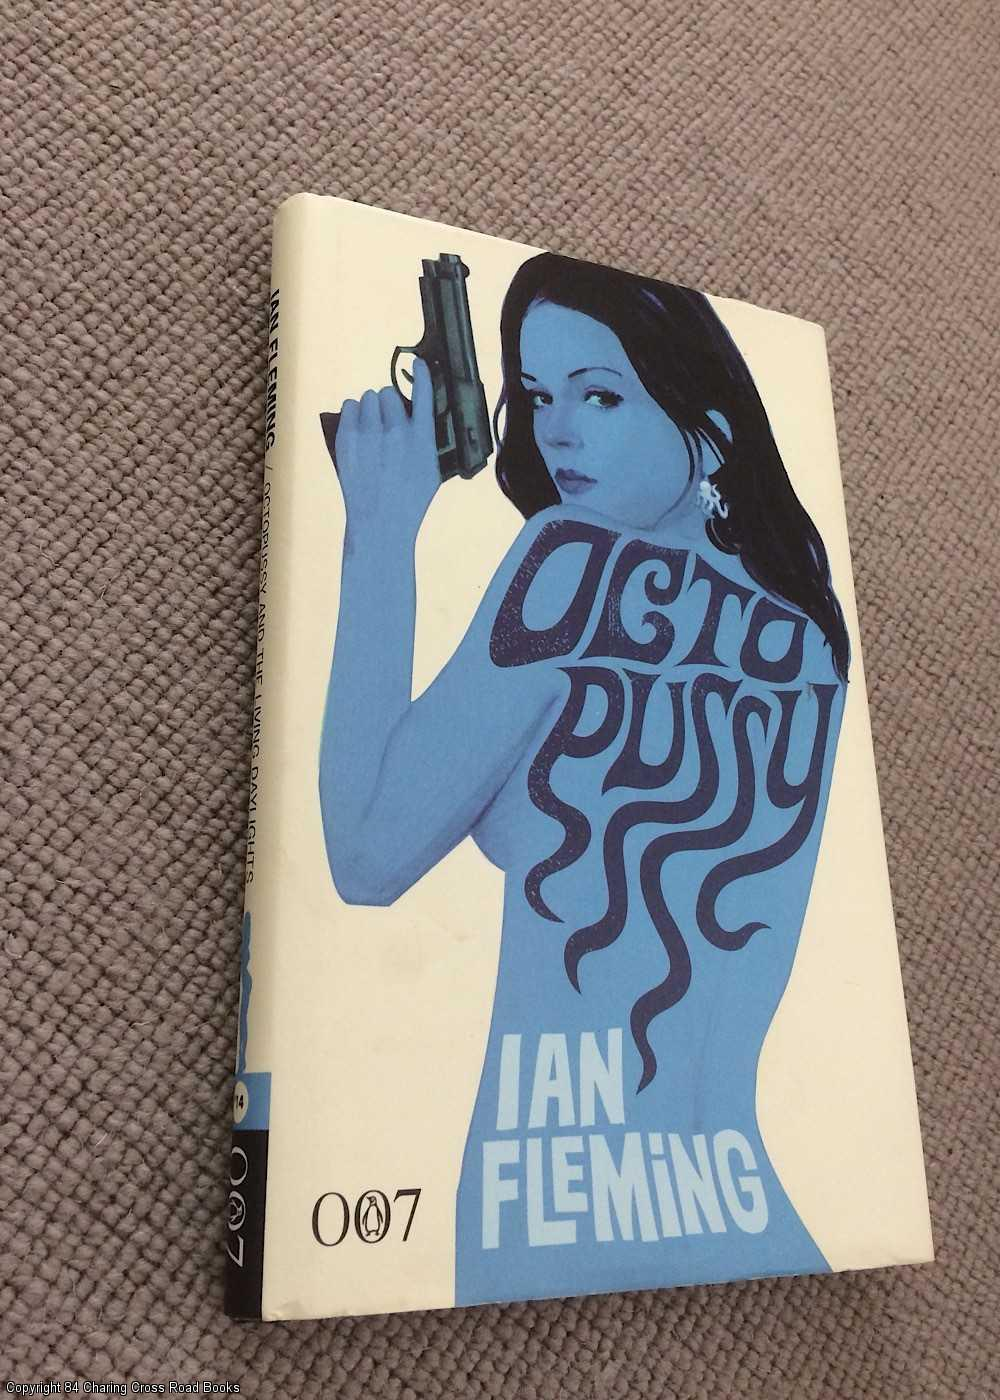 FLEMING, IAN - Octopussy and The Living Daylights